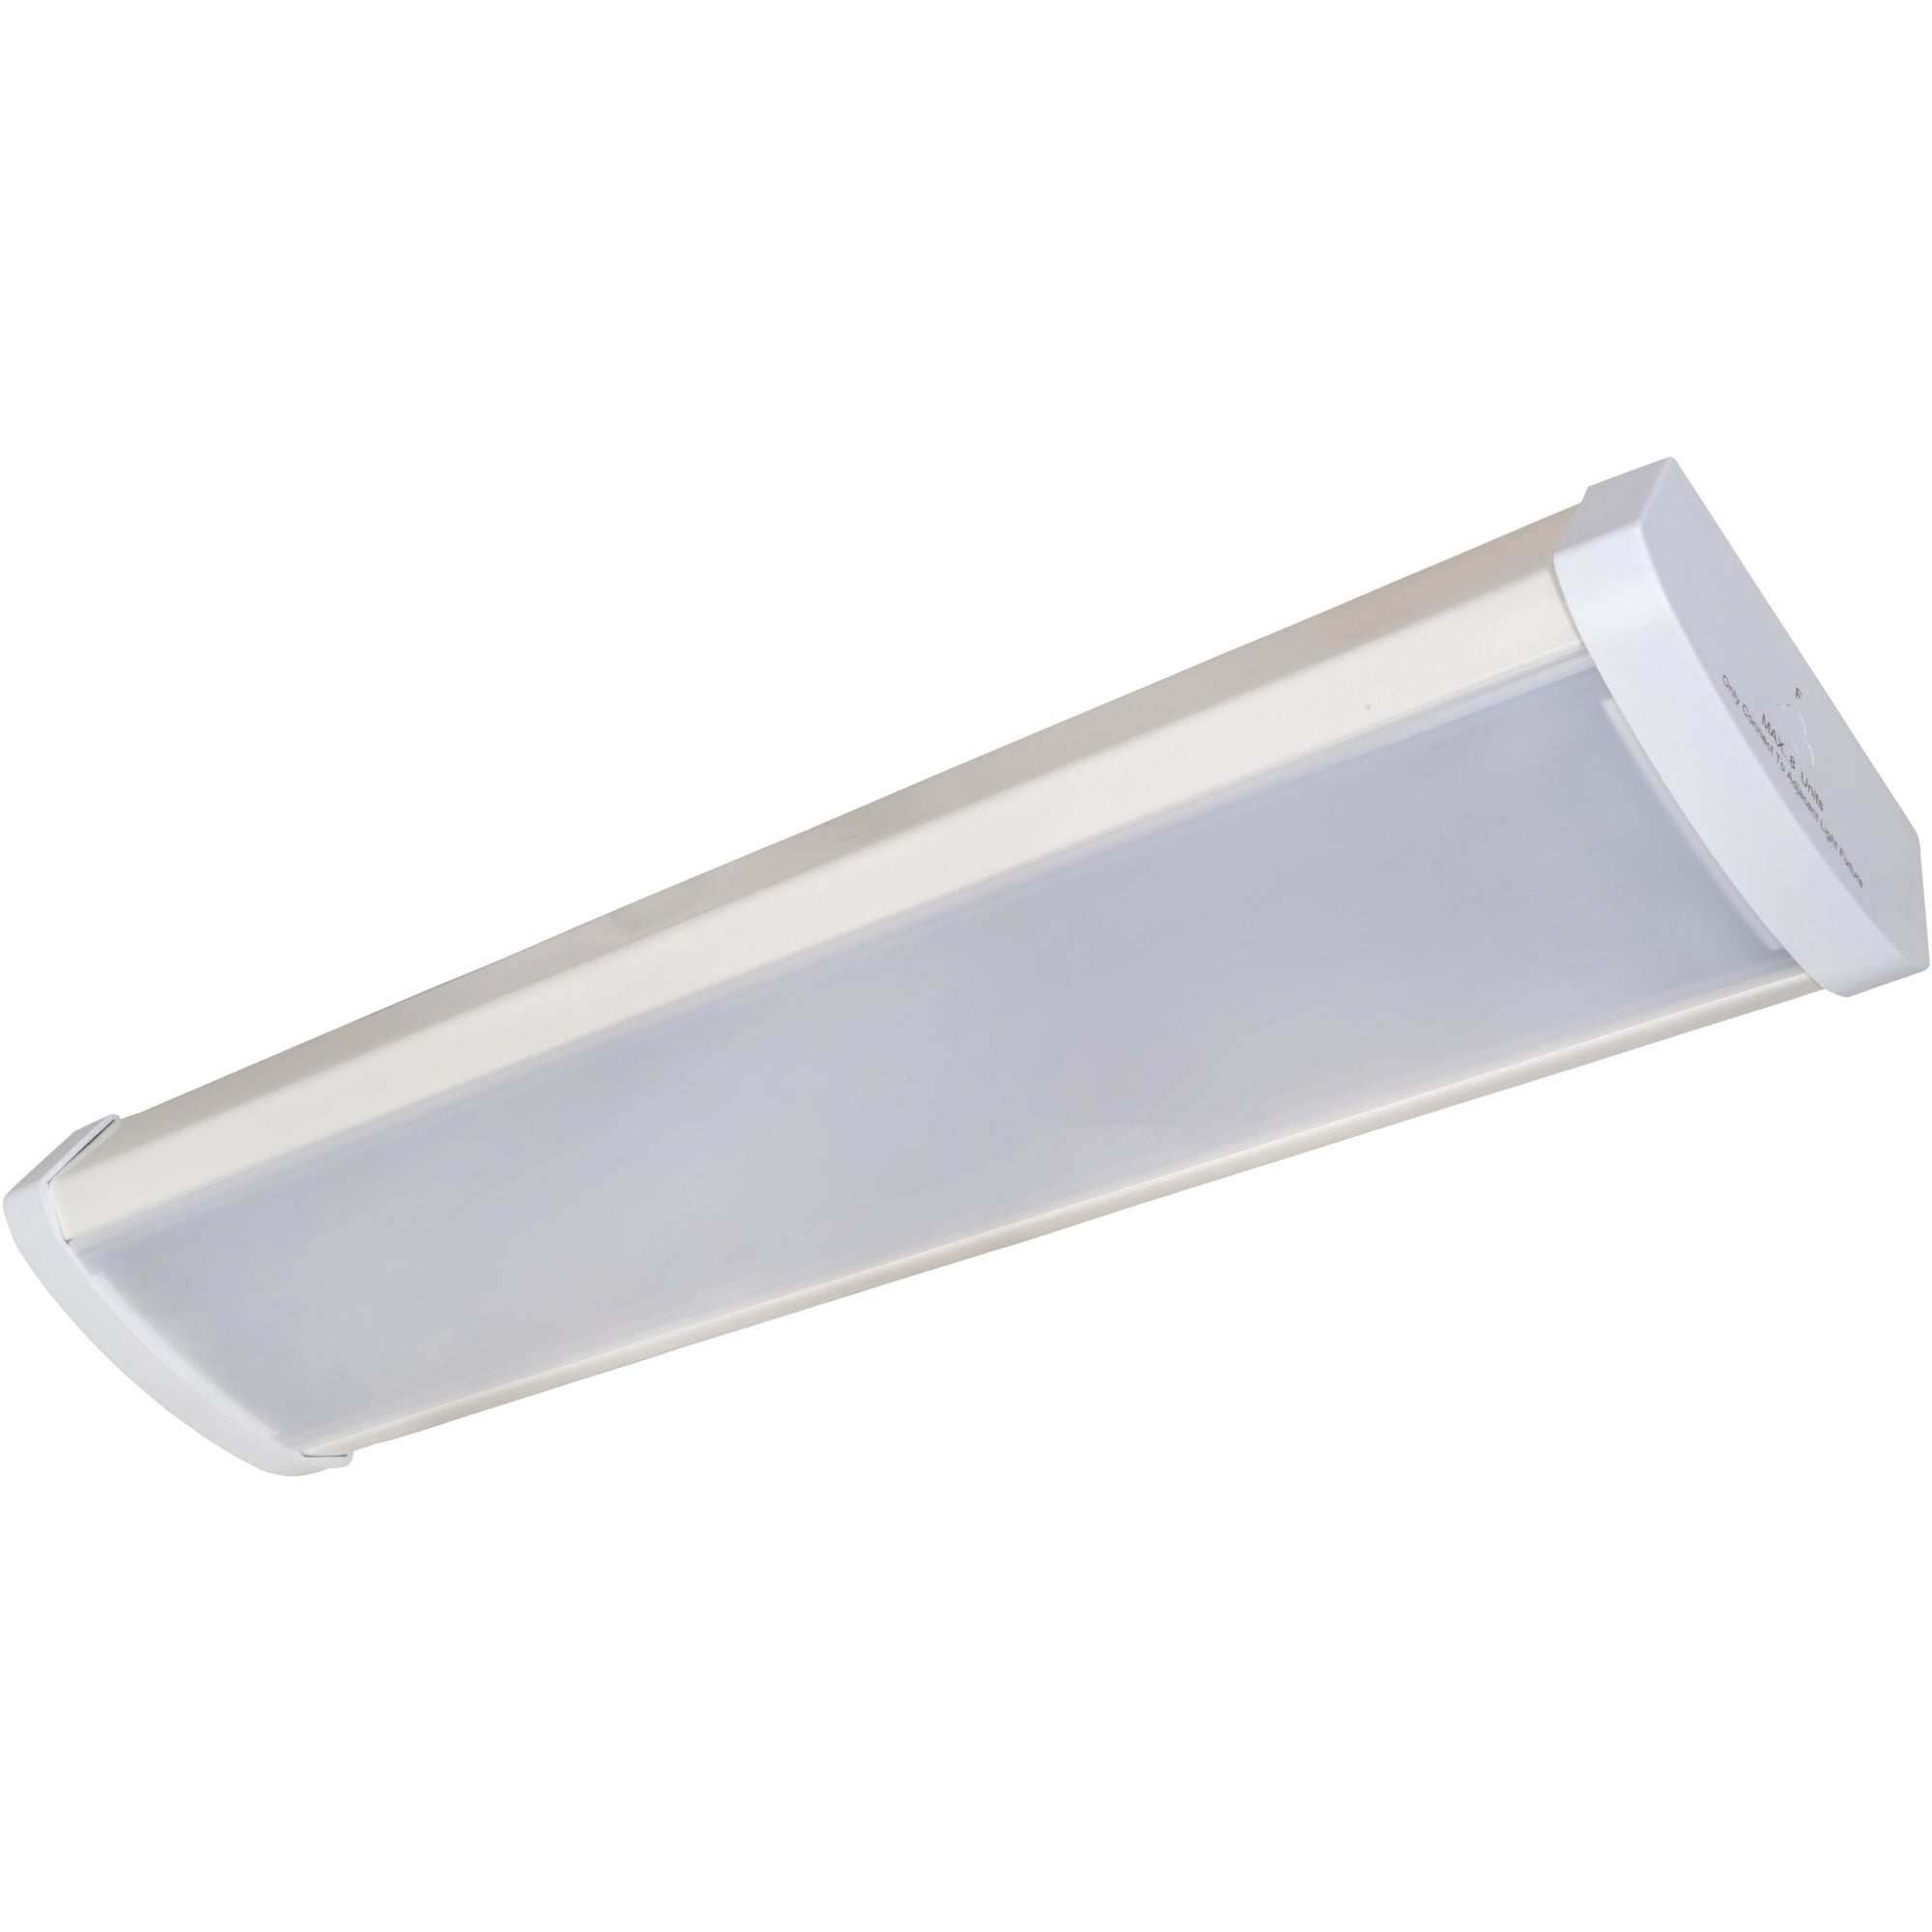 25W 2' FROSTED WRAP LIGHT FIXTURE 4000K 'DLC' - CommerciaLight Distributors